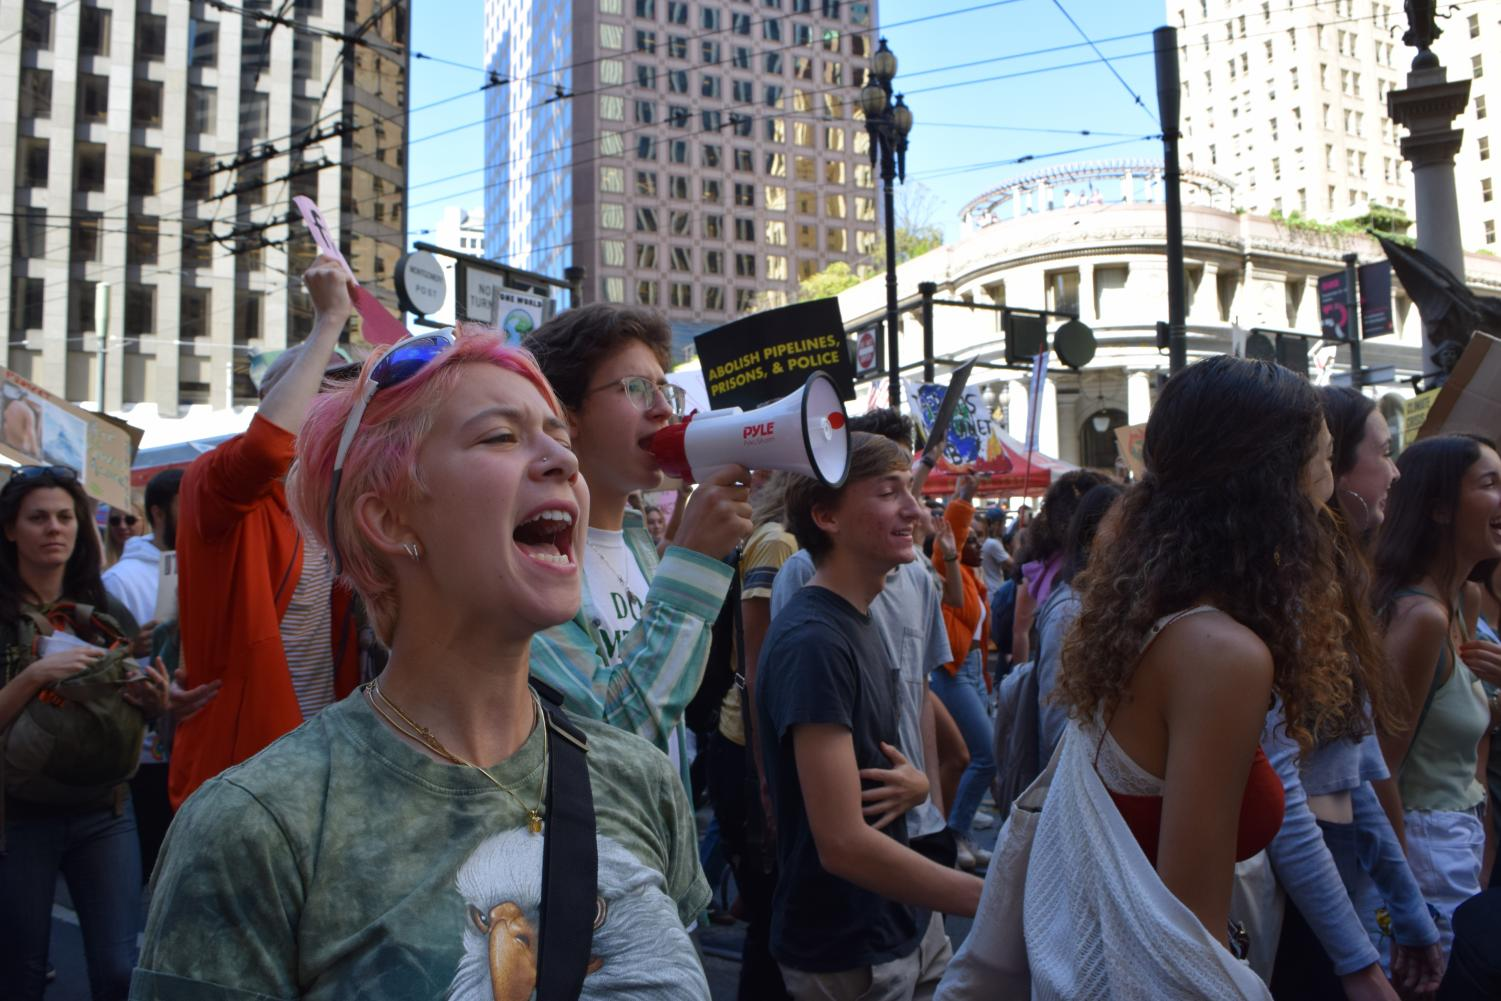 Protesters chant while marching on Market Street. Staff Photo: Kate Hammond.